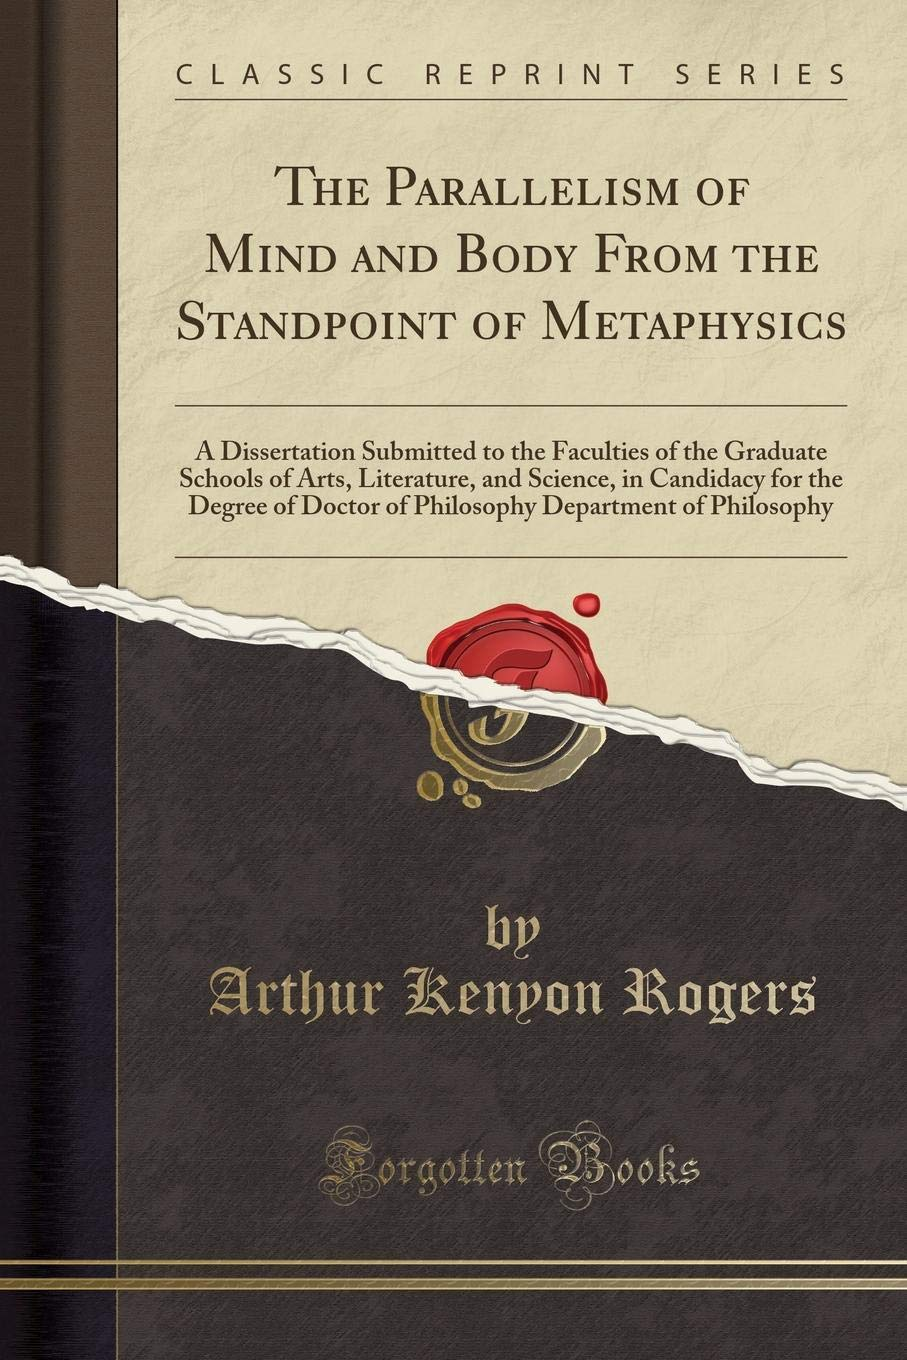 The Parallelism of Mind and Body From the Standpoint of Metaphysics: A Dissertation Submitted to the Faculties of the Graduate Schools of Arts, ... Doctor of Philosophy Department of Philosophy pdf